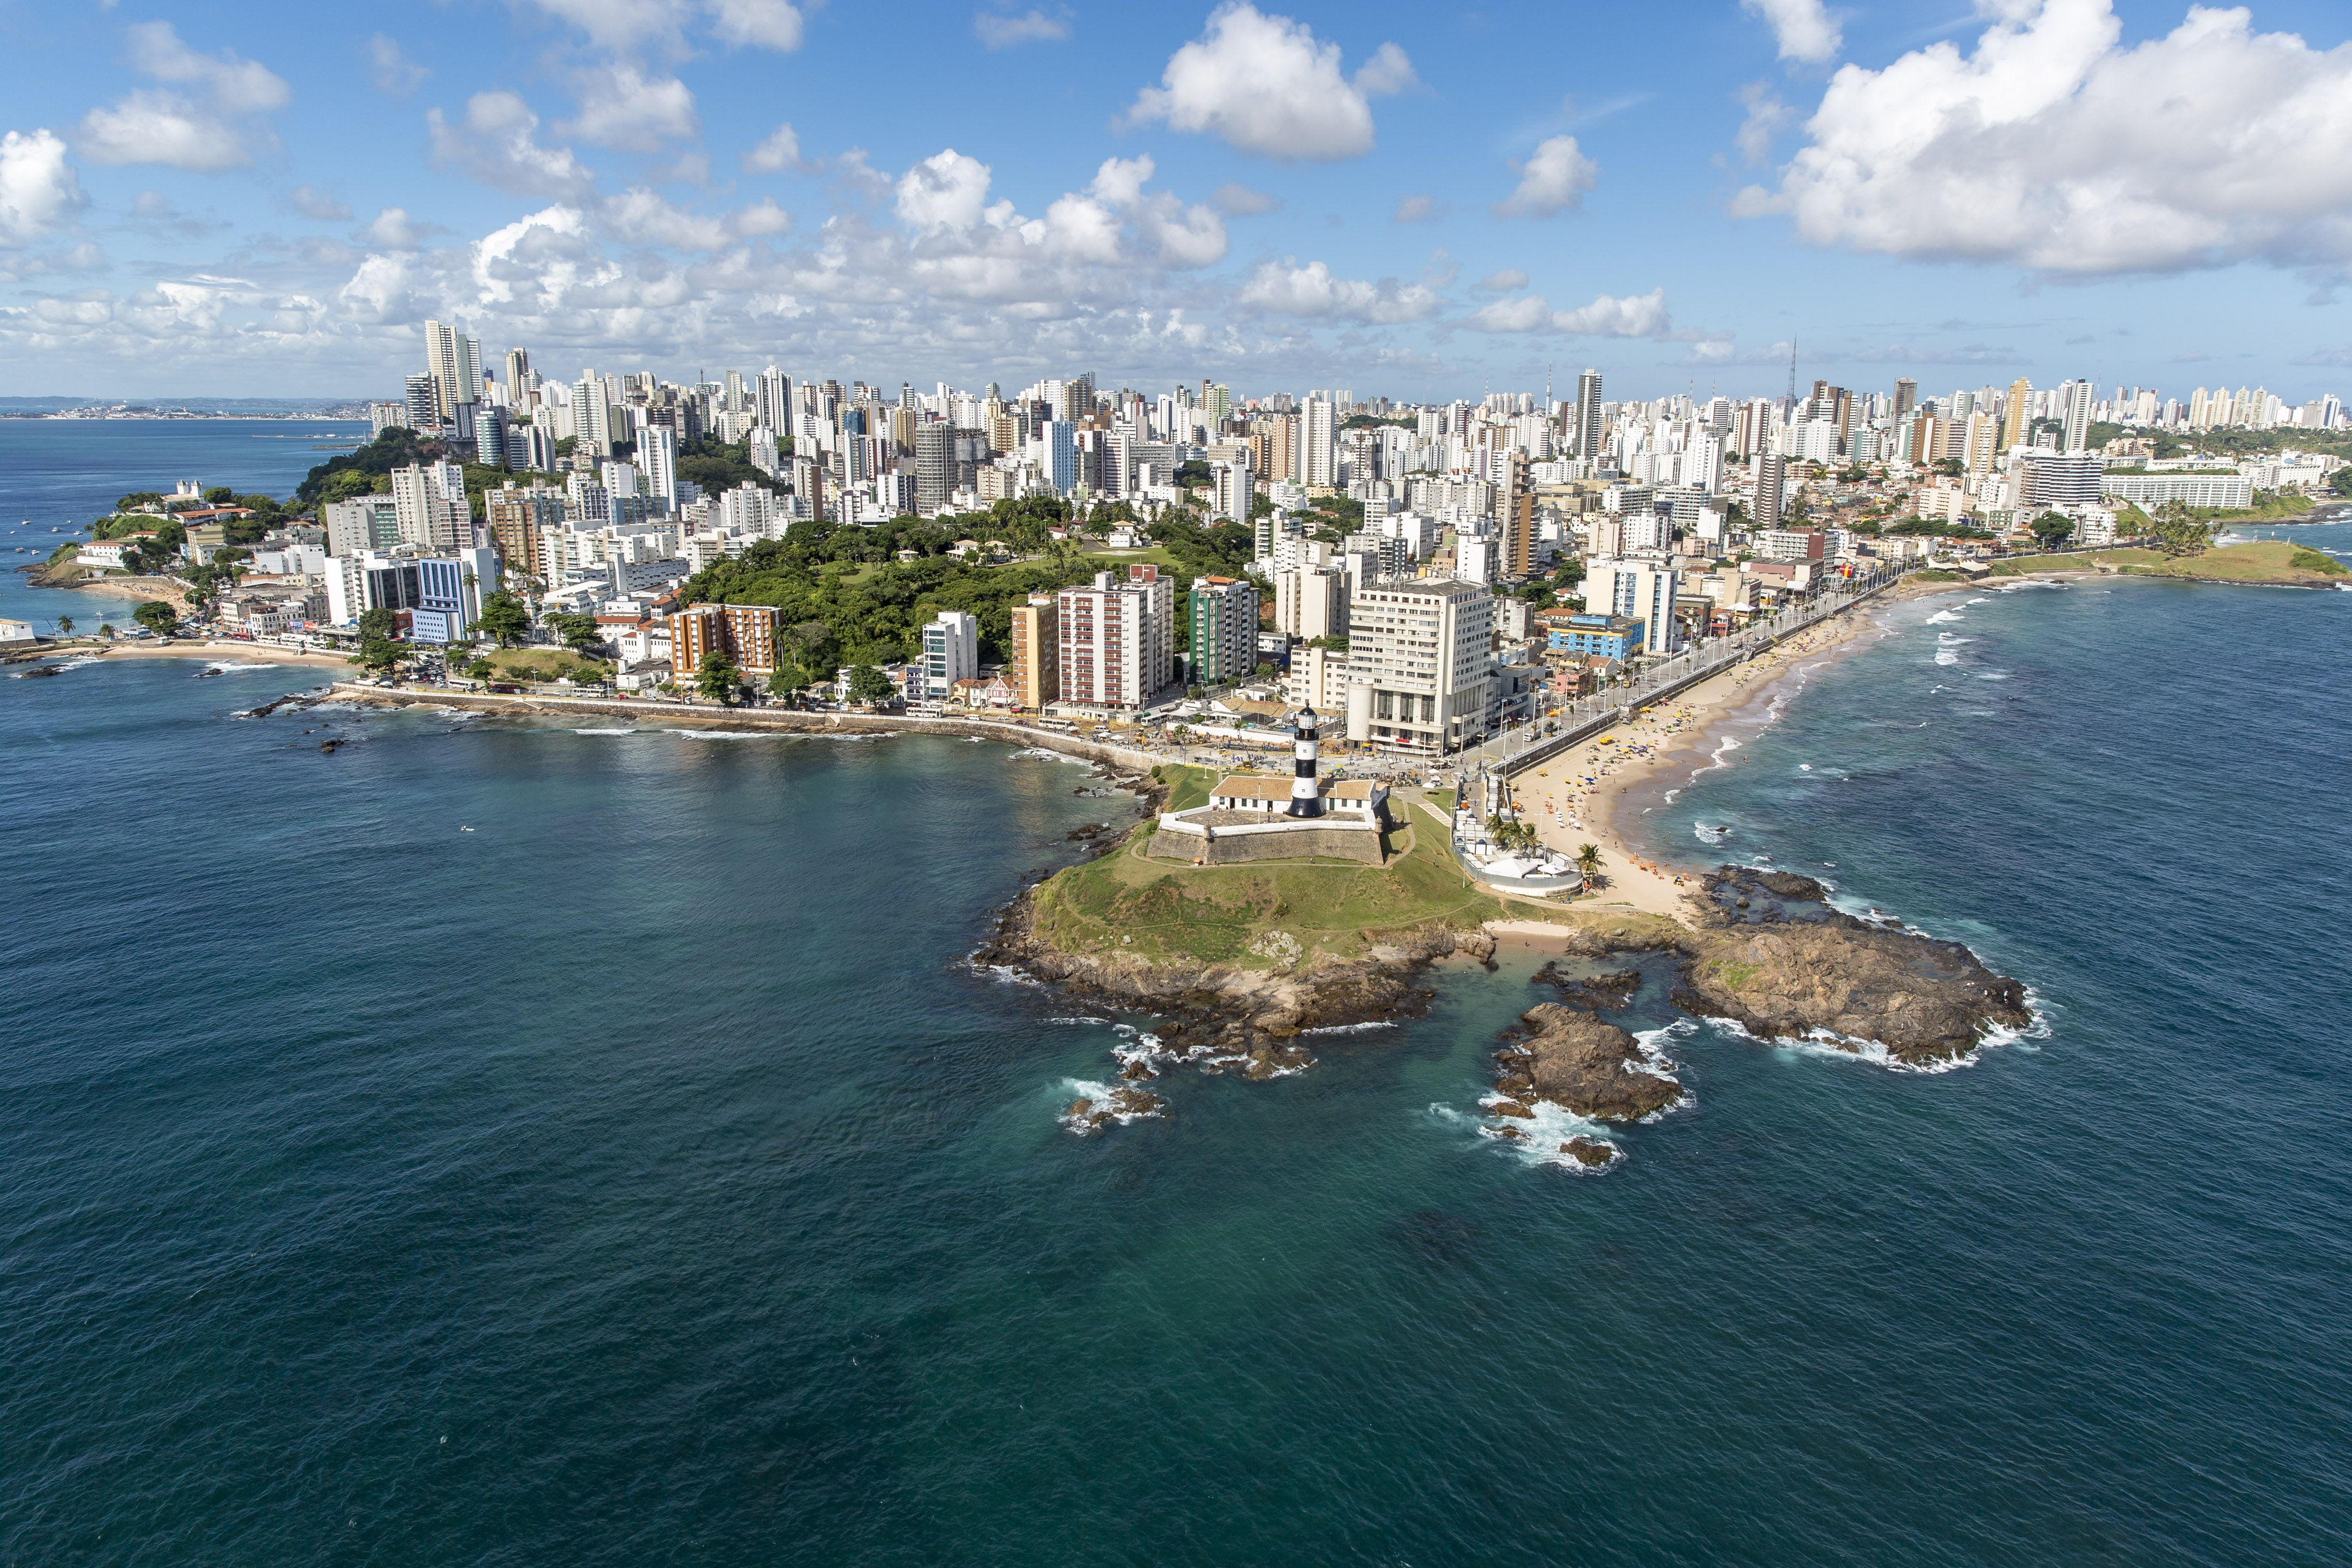 Journalists will visit beaches, sights and North Coast of Salvador ...